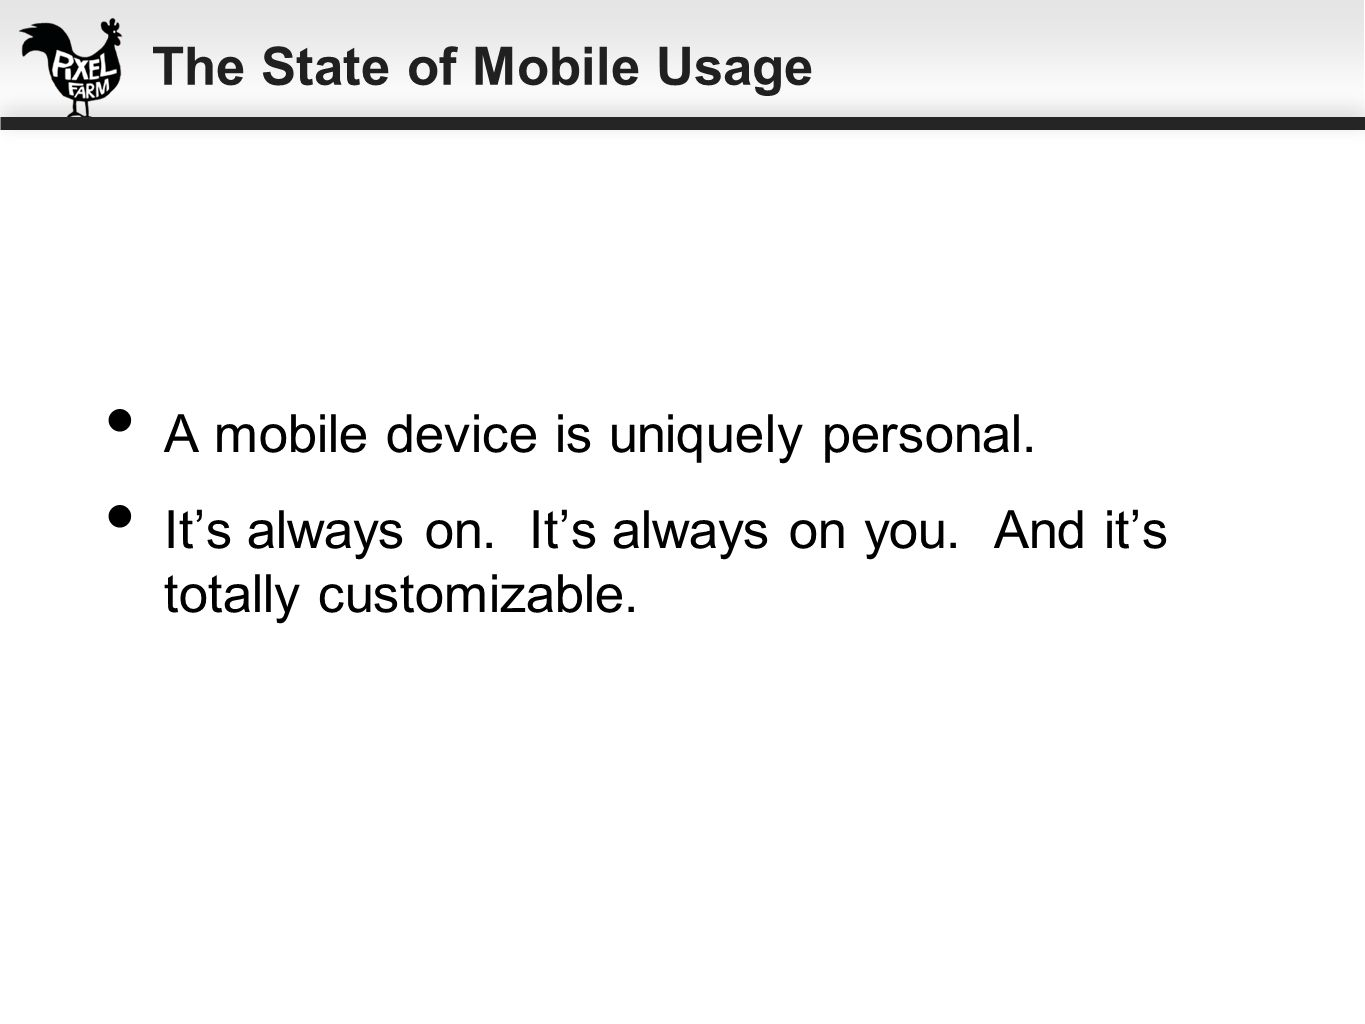 A mobile device is uniquely personal. Its always on. Its always on you. And its totally customizable. The State of Mobile Usage